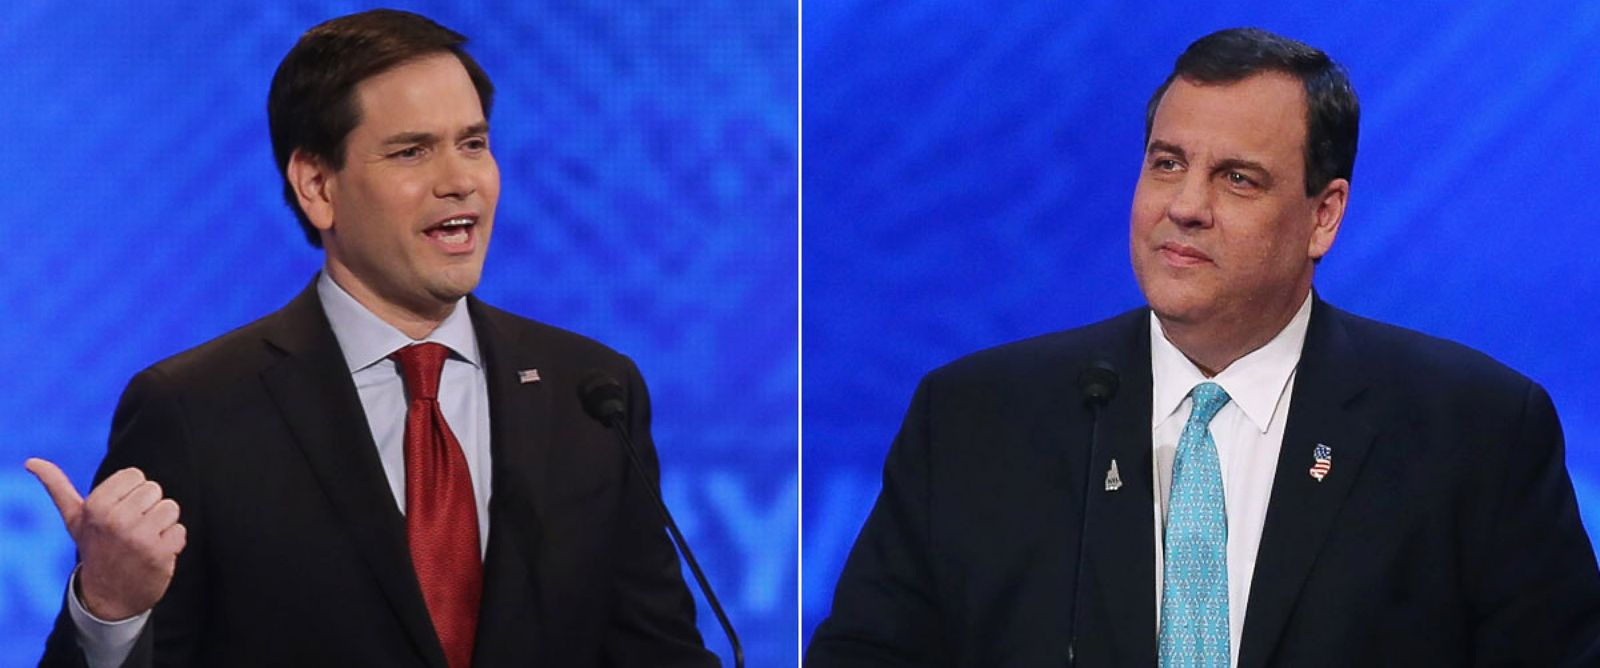 PHOTO: Republican presidential candidates Sen. Marco Rubio and Gov. Chris Christie participate in the Republican presidential debate at St. Anselm College on Feb. 6, 2016, in Manchester, New Hampshire.